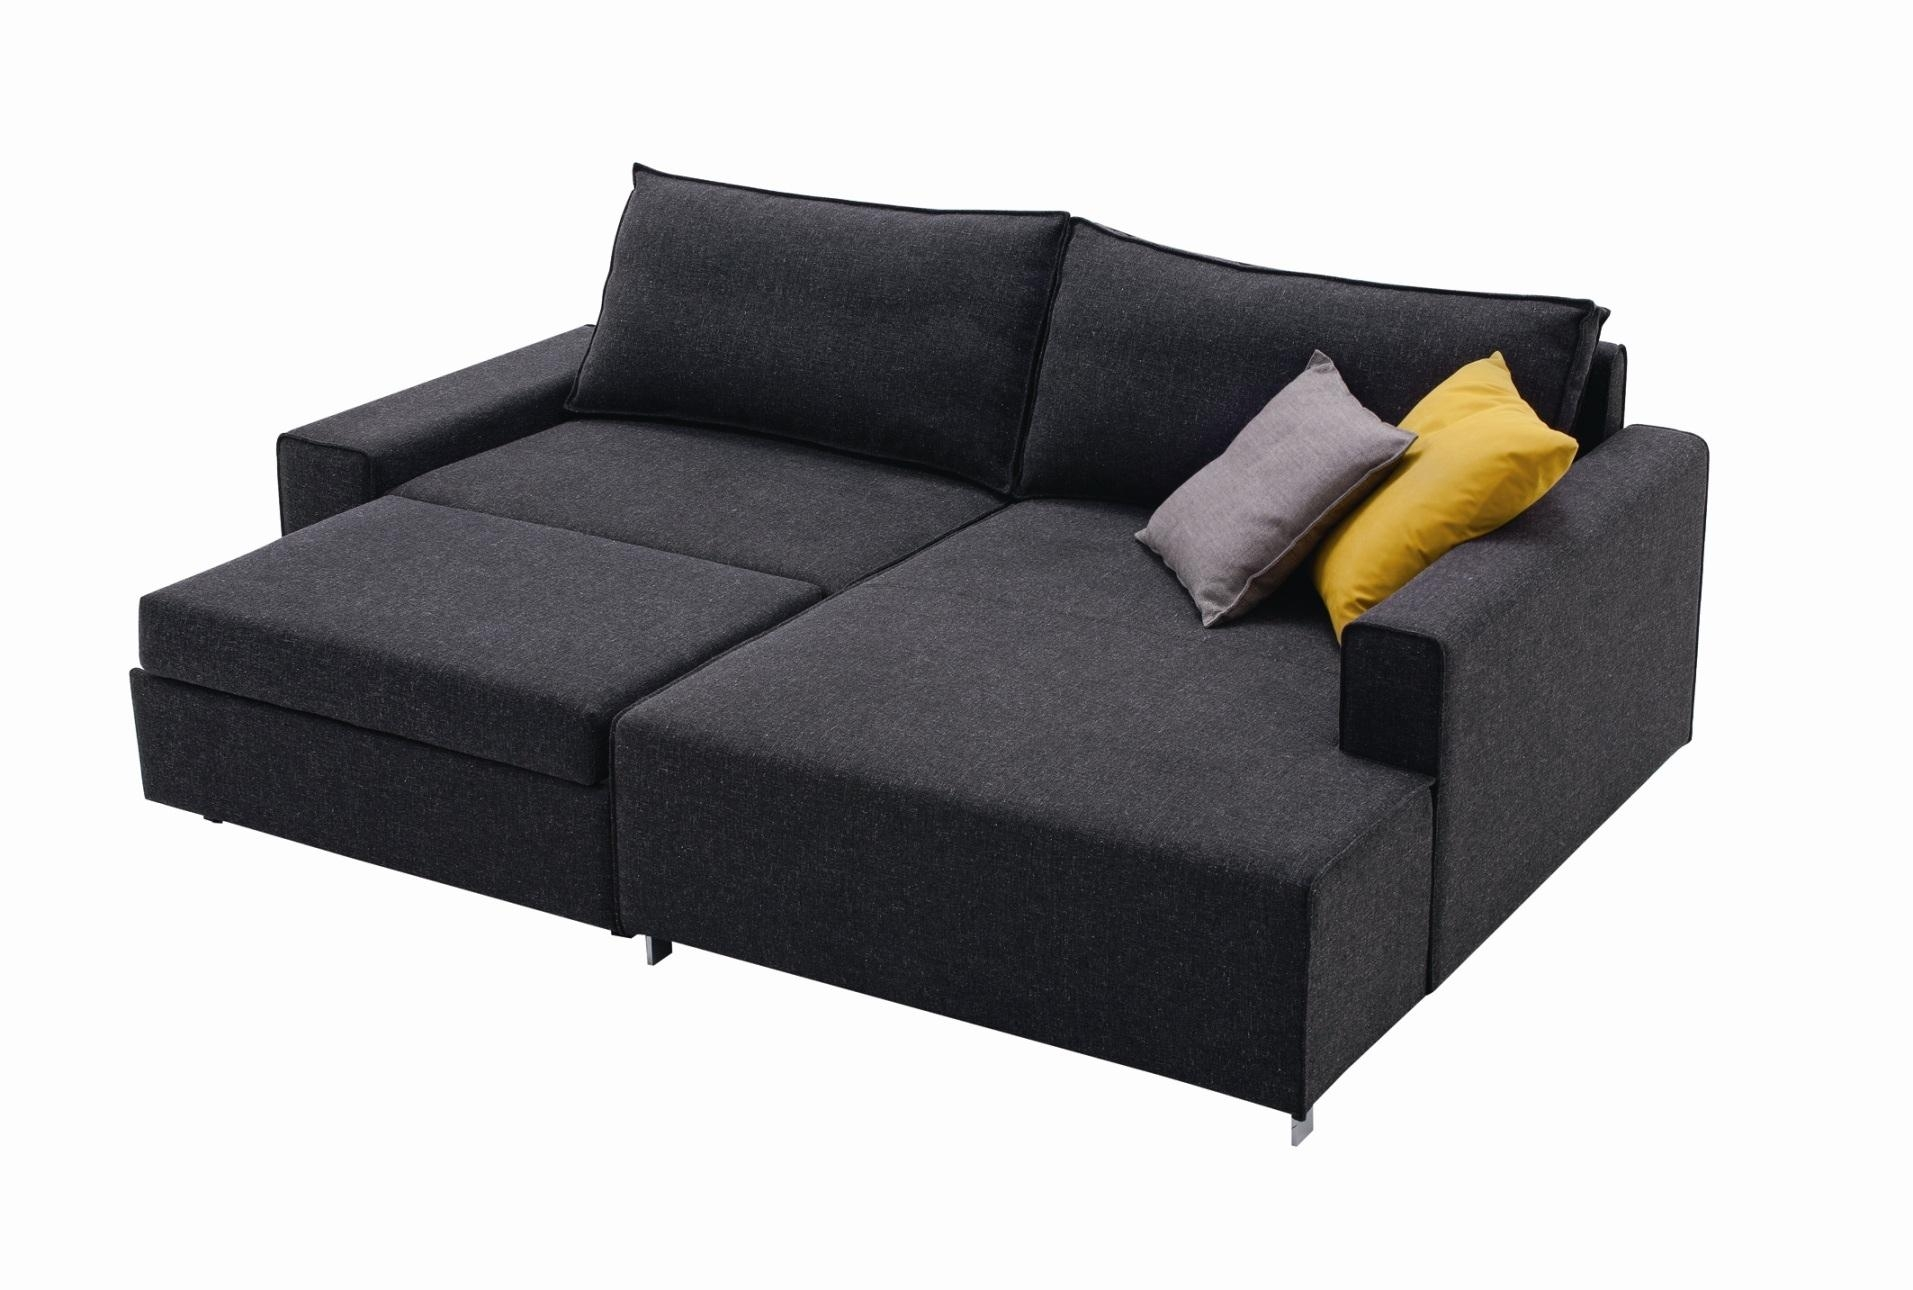 Sofas: Wayfair Beds | Futon Sofa Beds | Cheap Sofa Sleepers Intended For Cheap Sofa Beds (View 2 of 20)